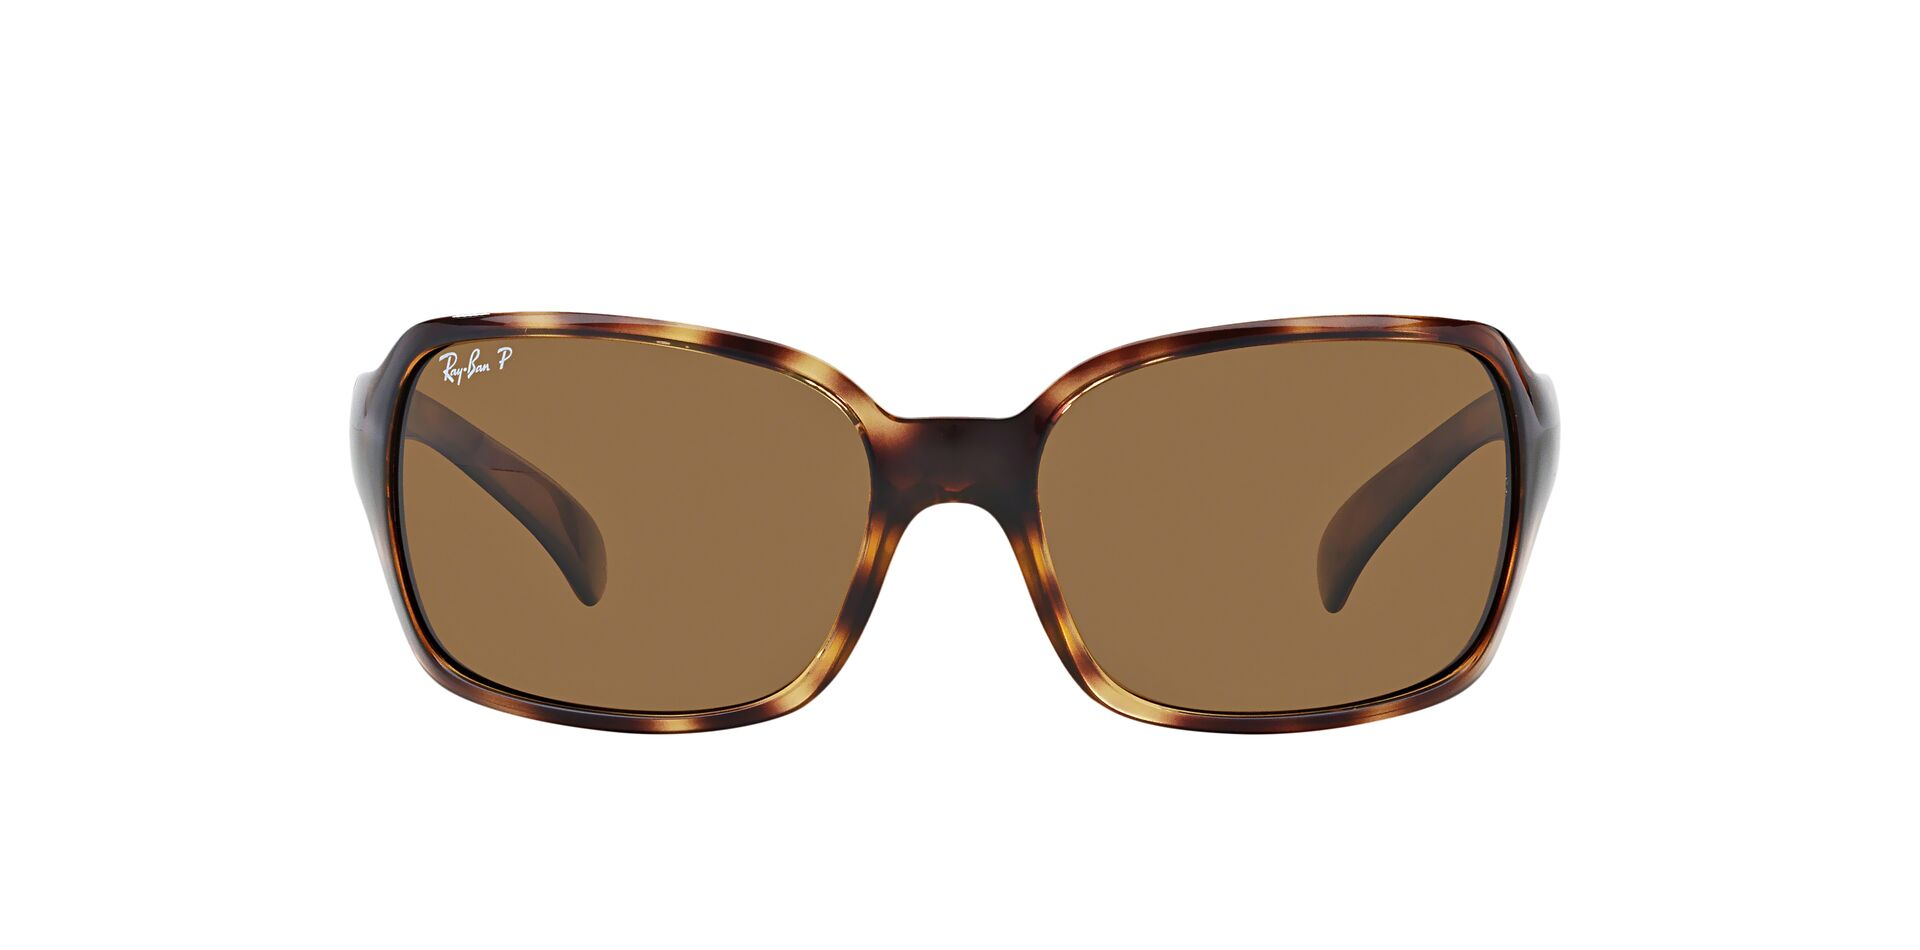 Ray Ban - RB4068 Tortoise/Brown Polarized Rectangular Unisex Sunglasses - 60mm